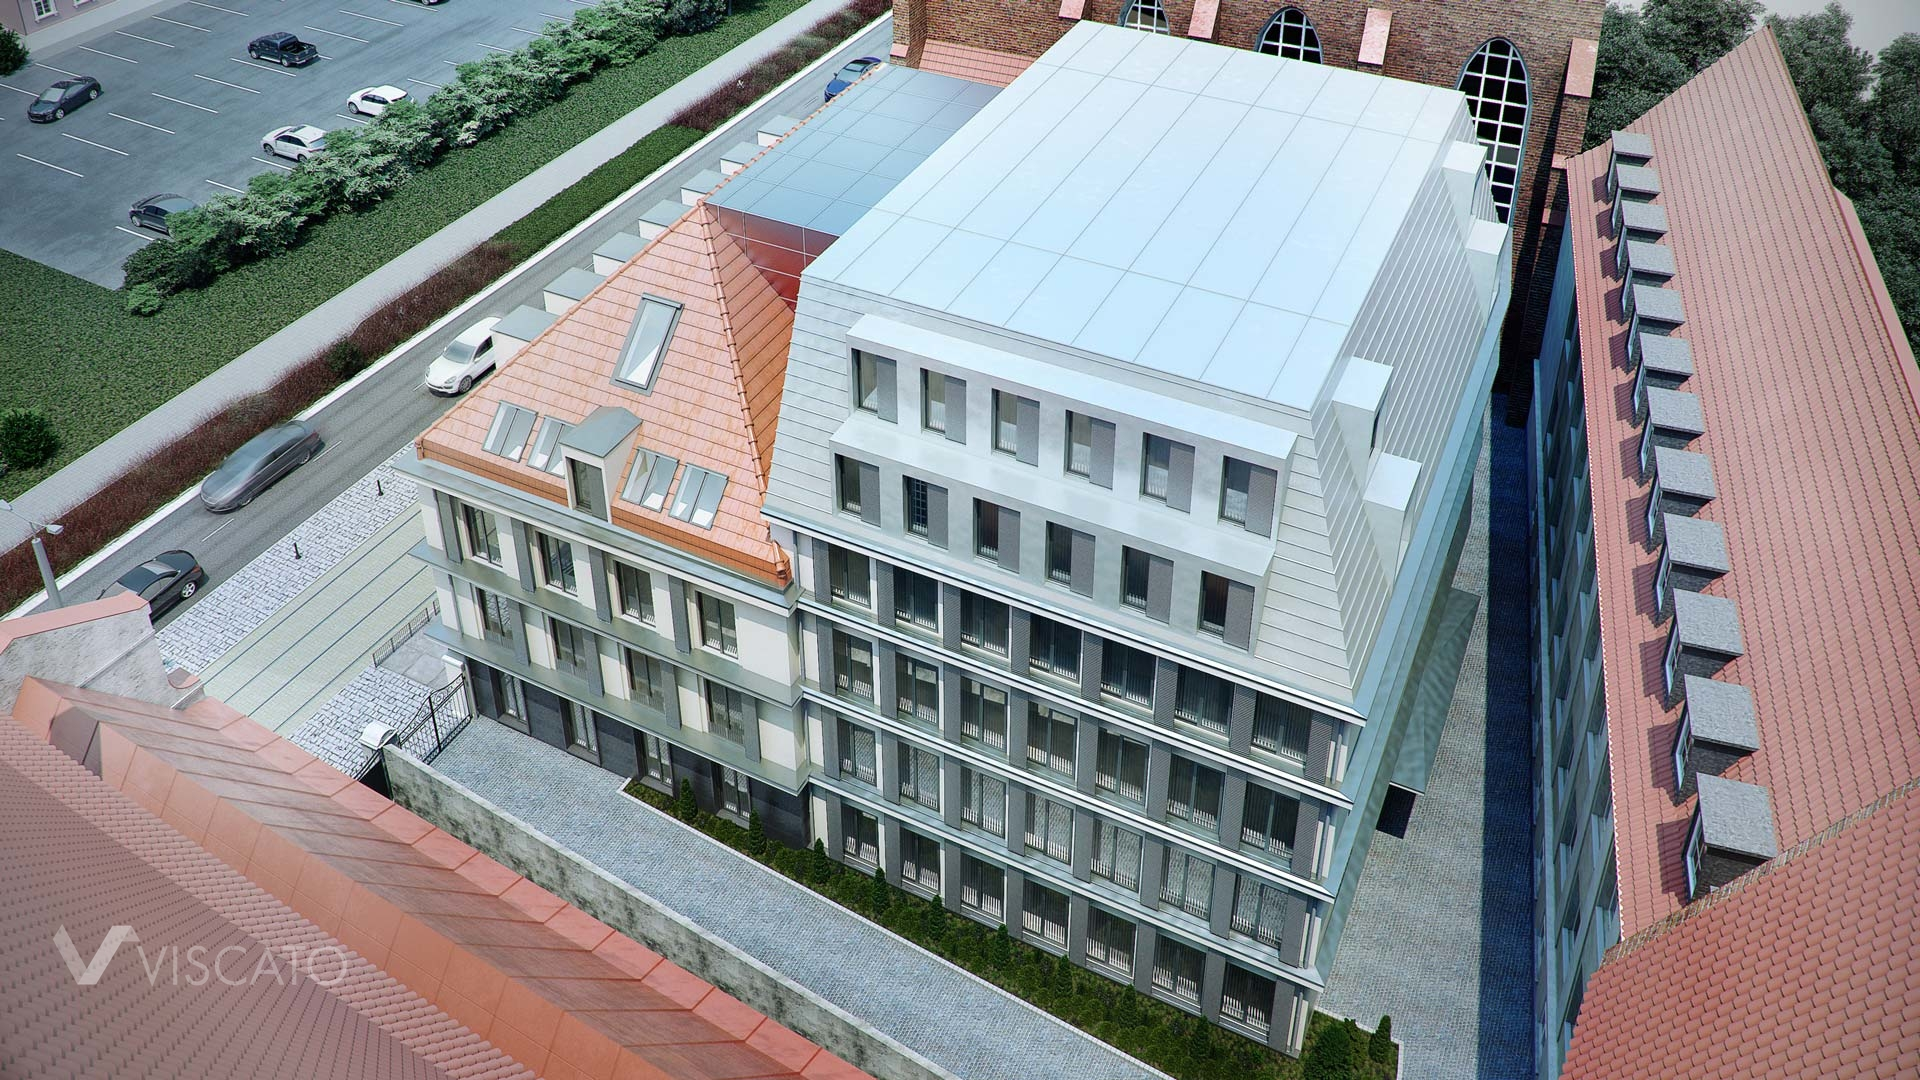 3D visualisation of a renovated old building- bird's-eye shot